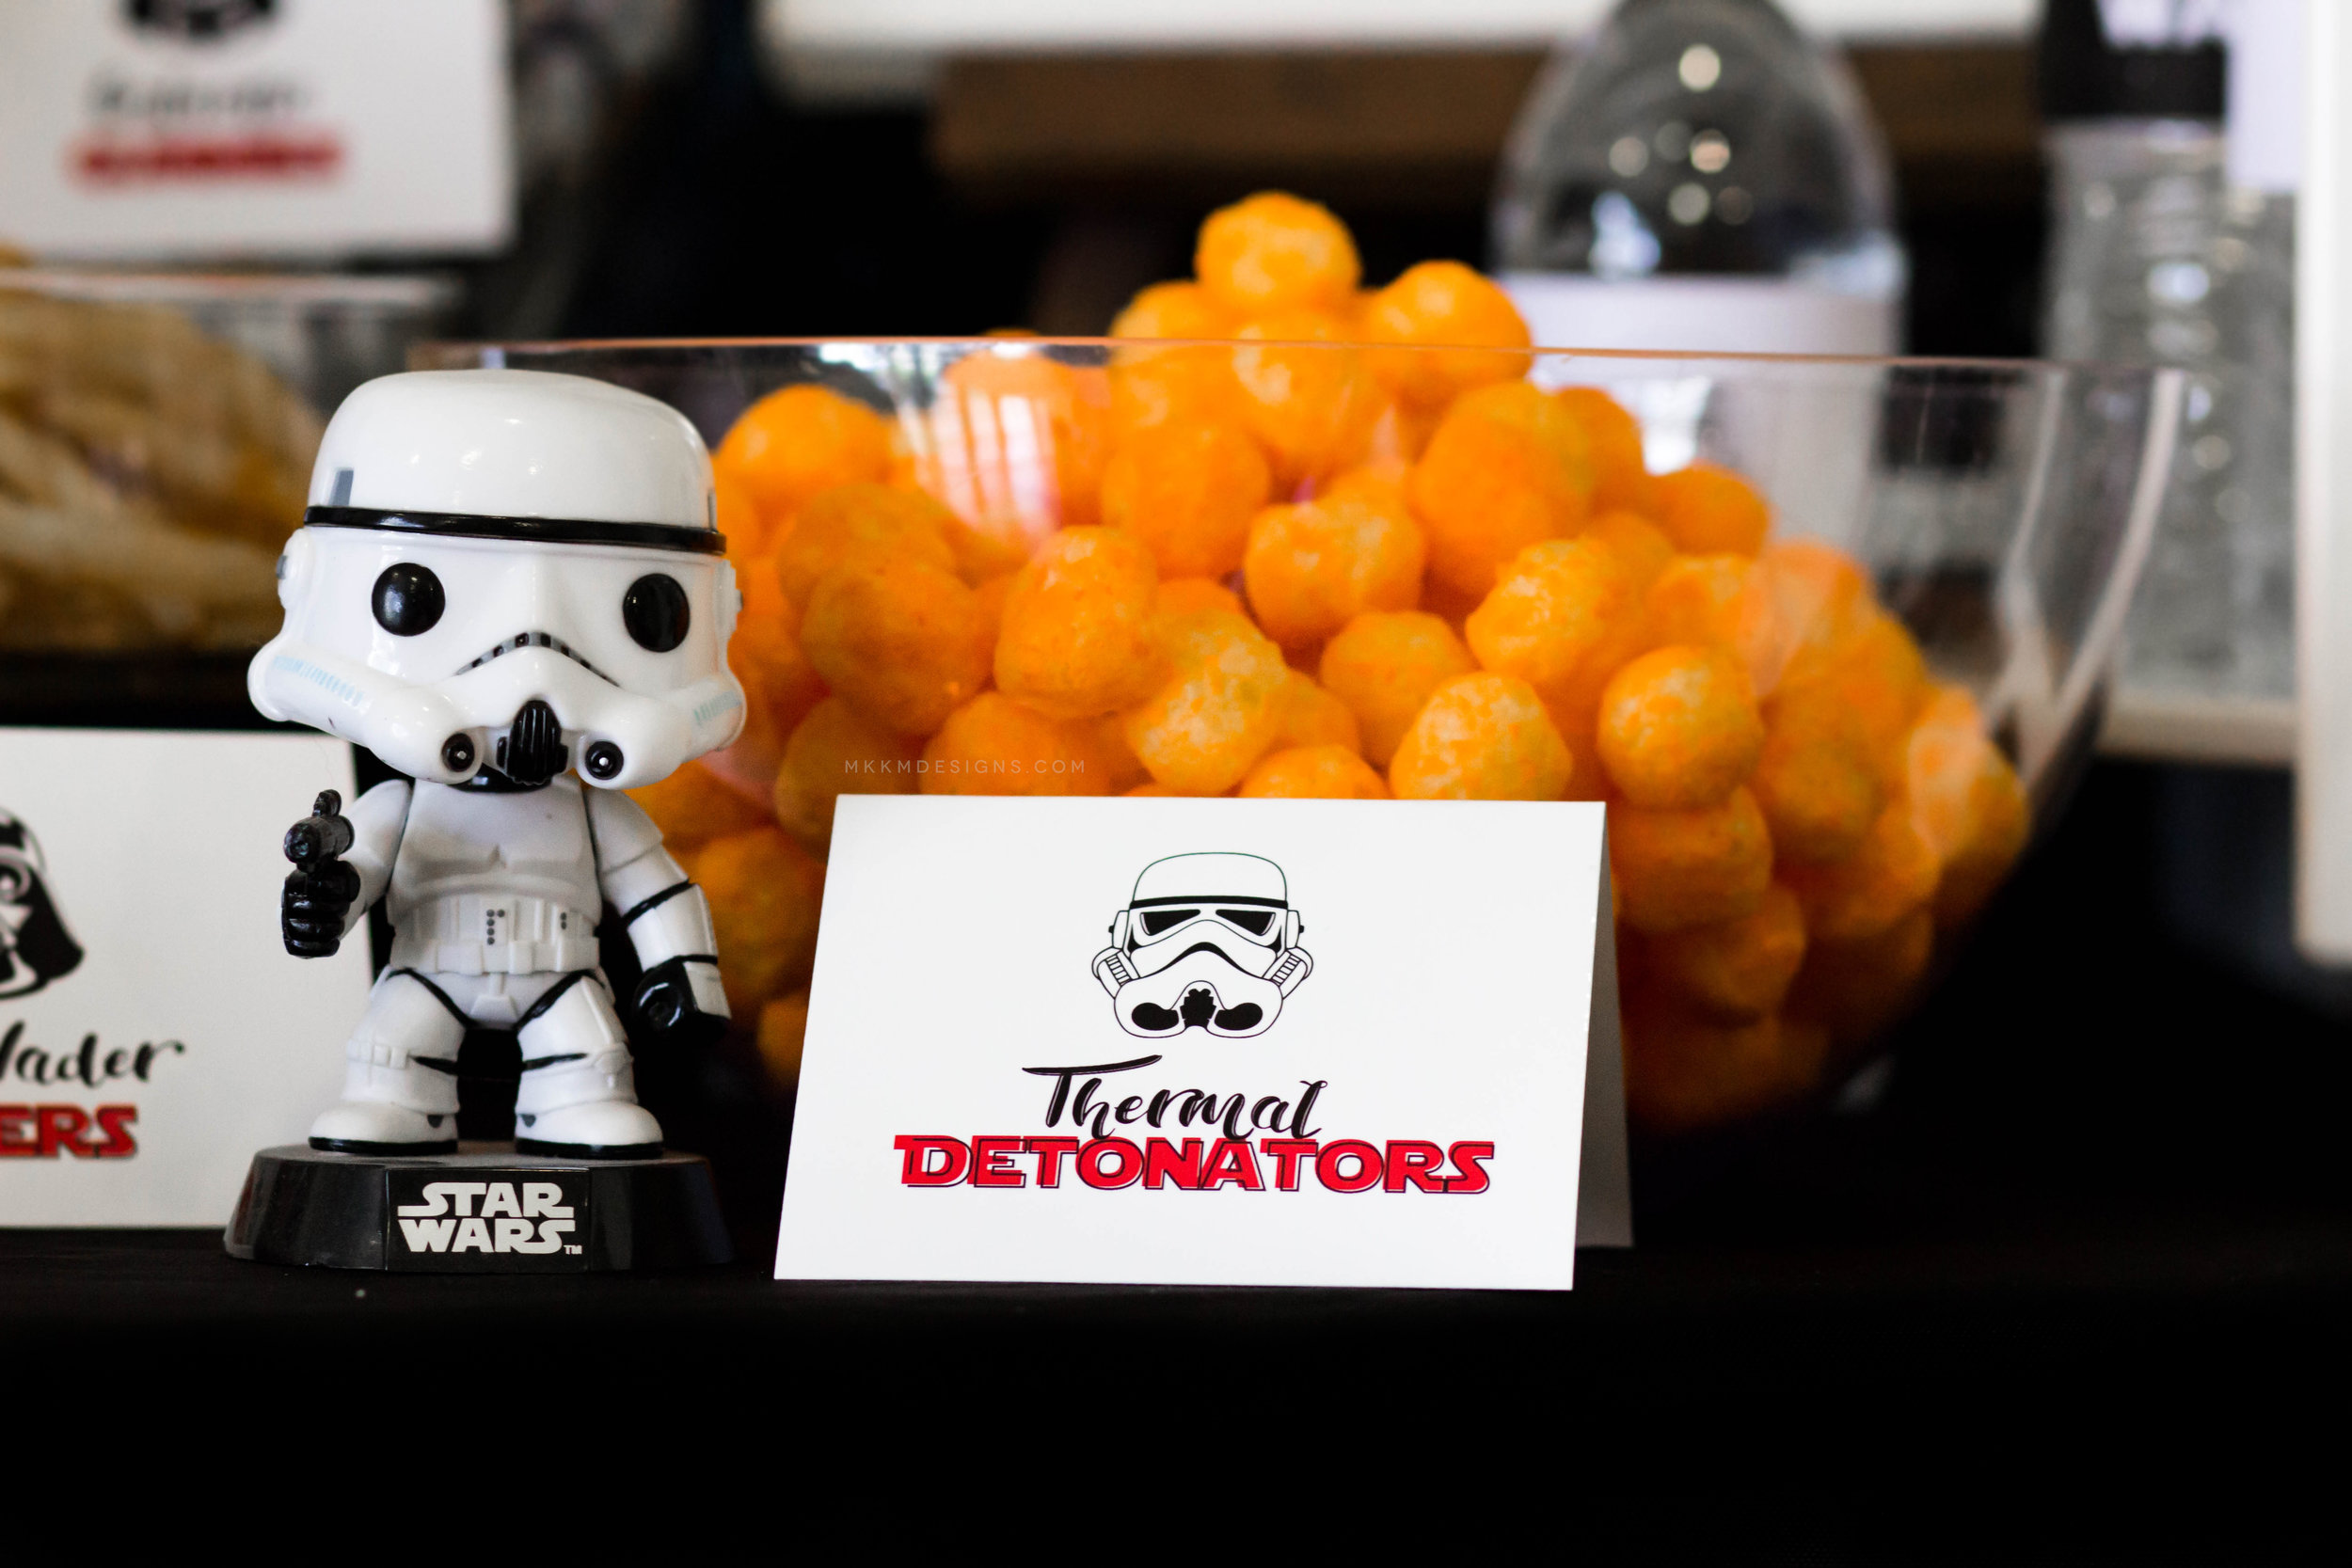 Star Wars Party Food Cards by Mkkm Designs #swoonworthysoirees